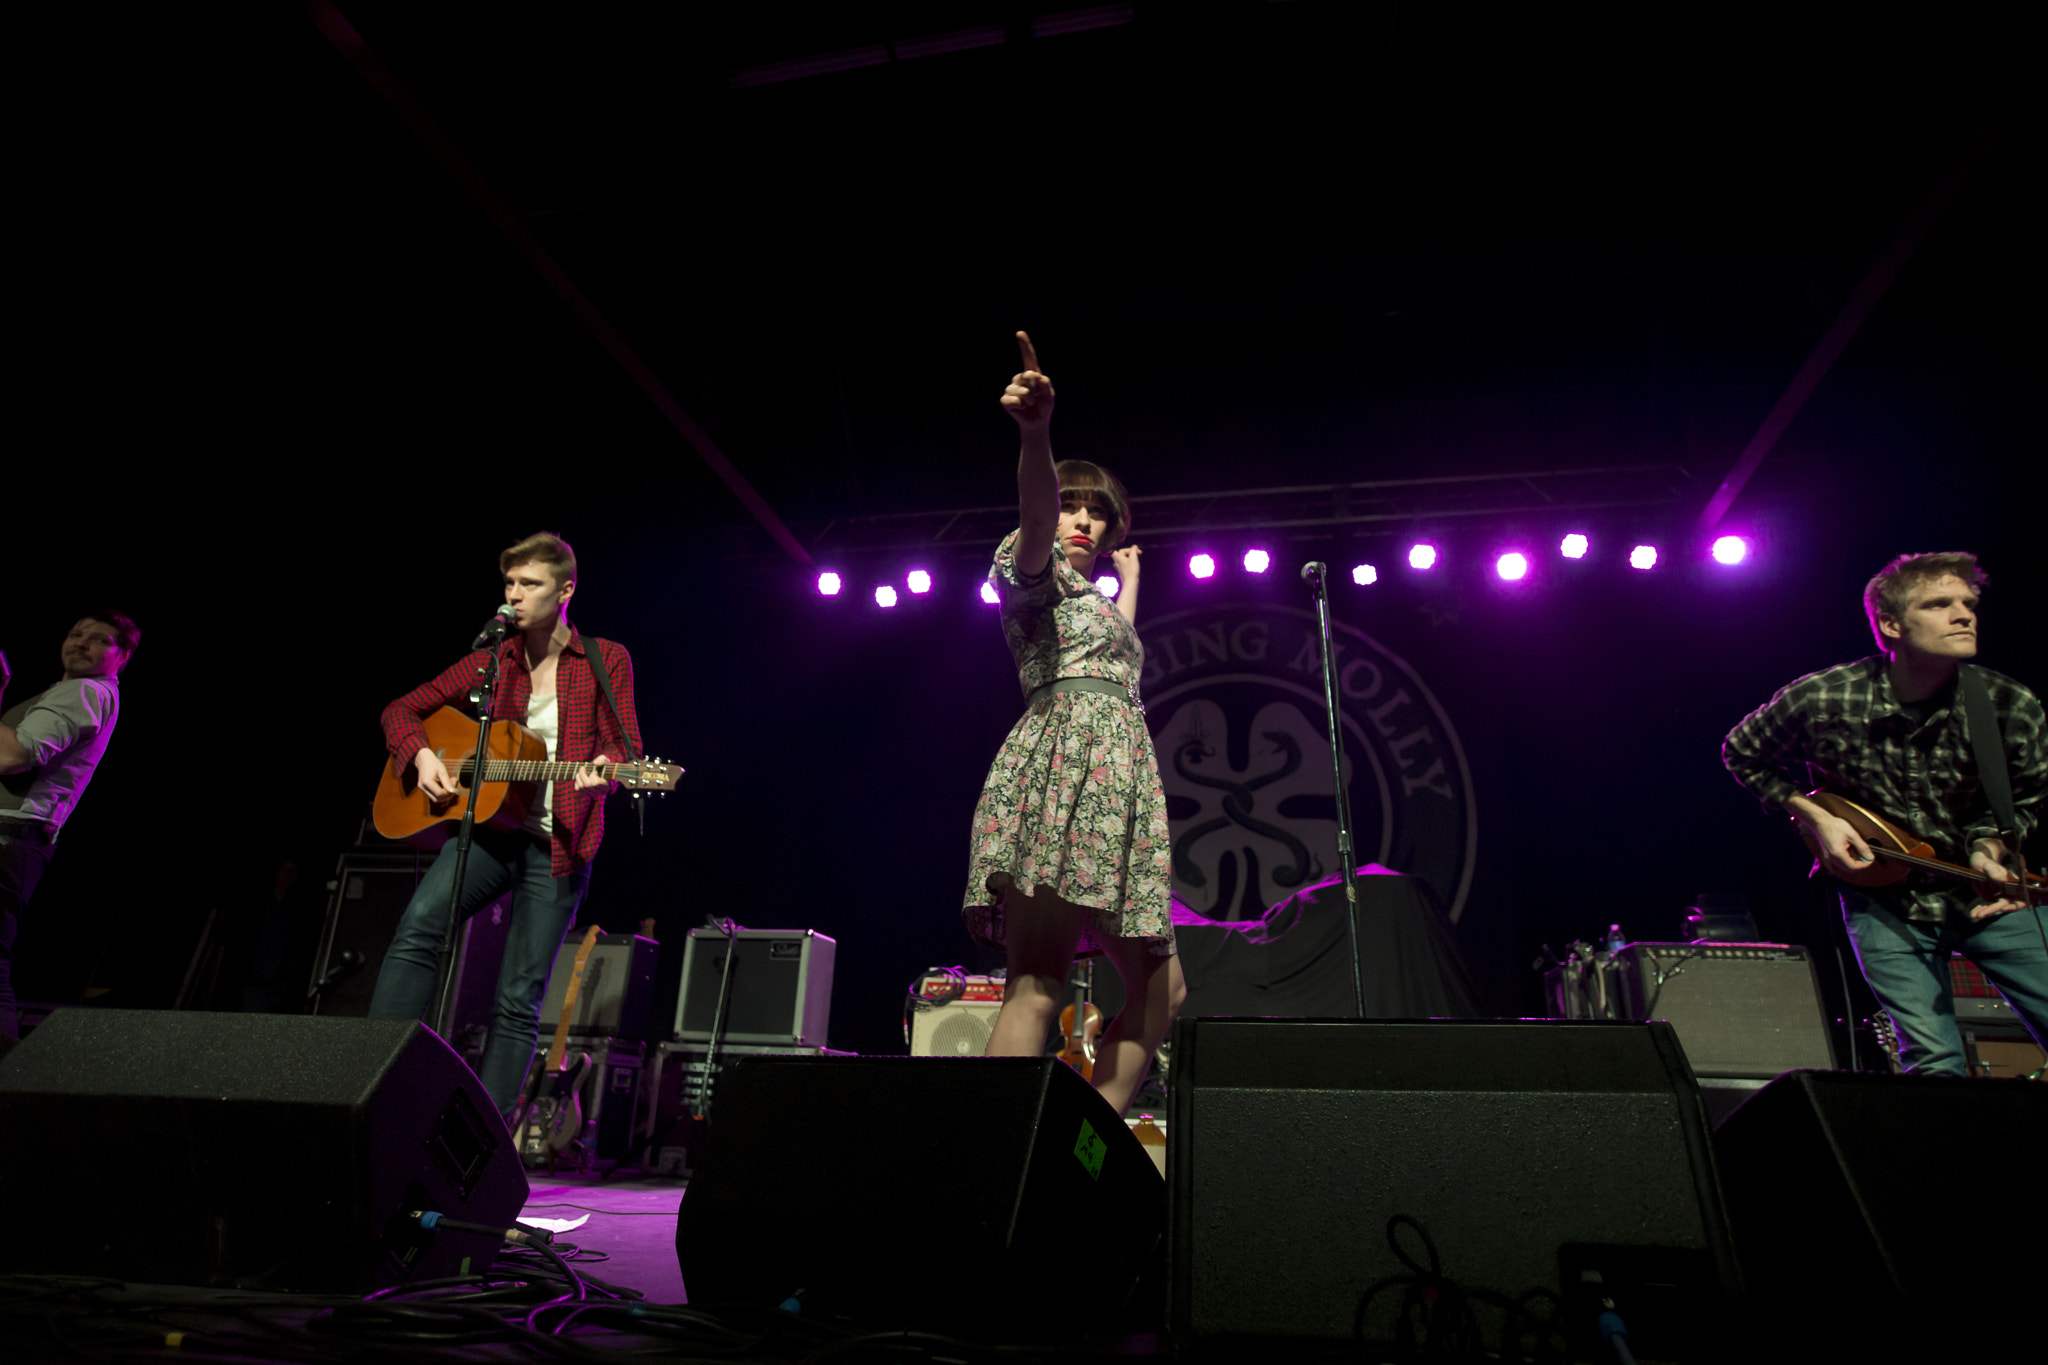 Photograph Skinny Lister by Ryan Baxter on 500px